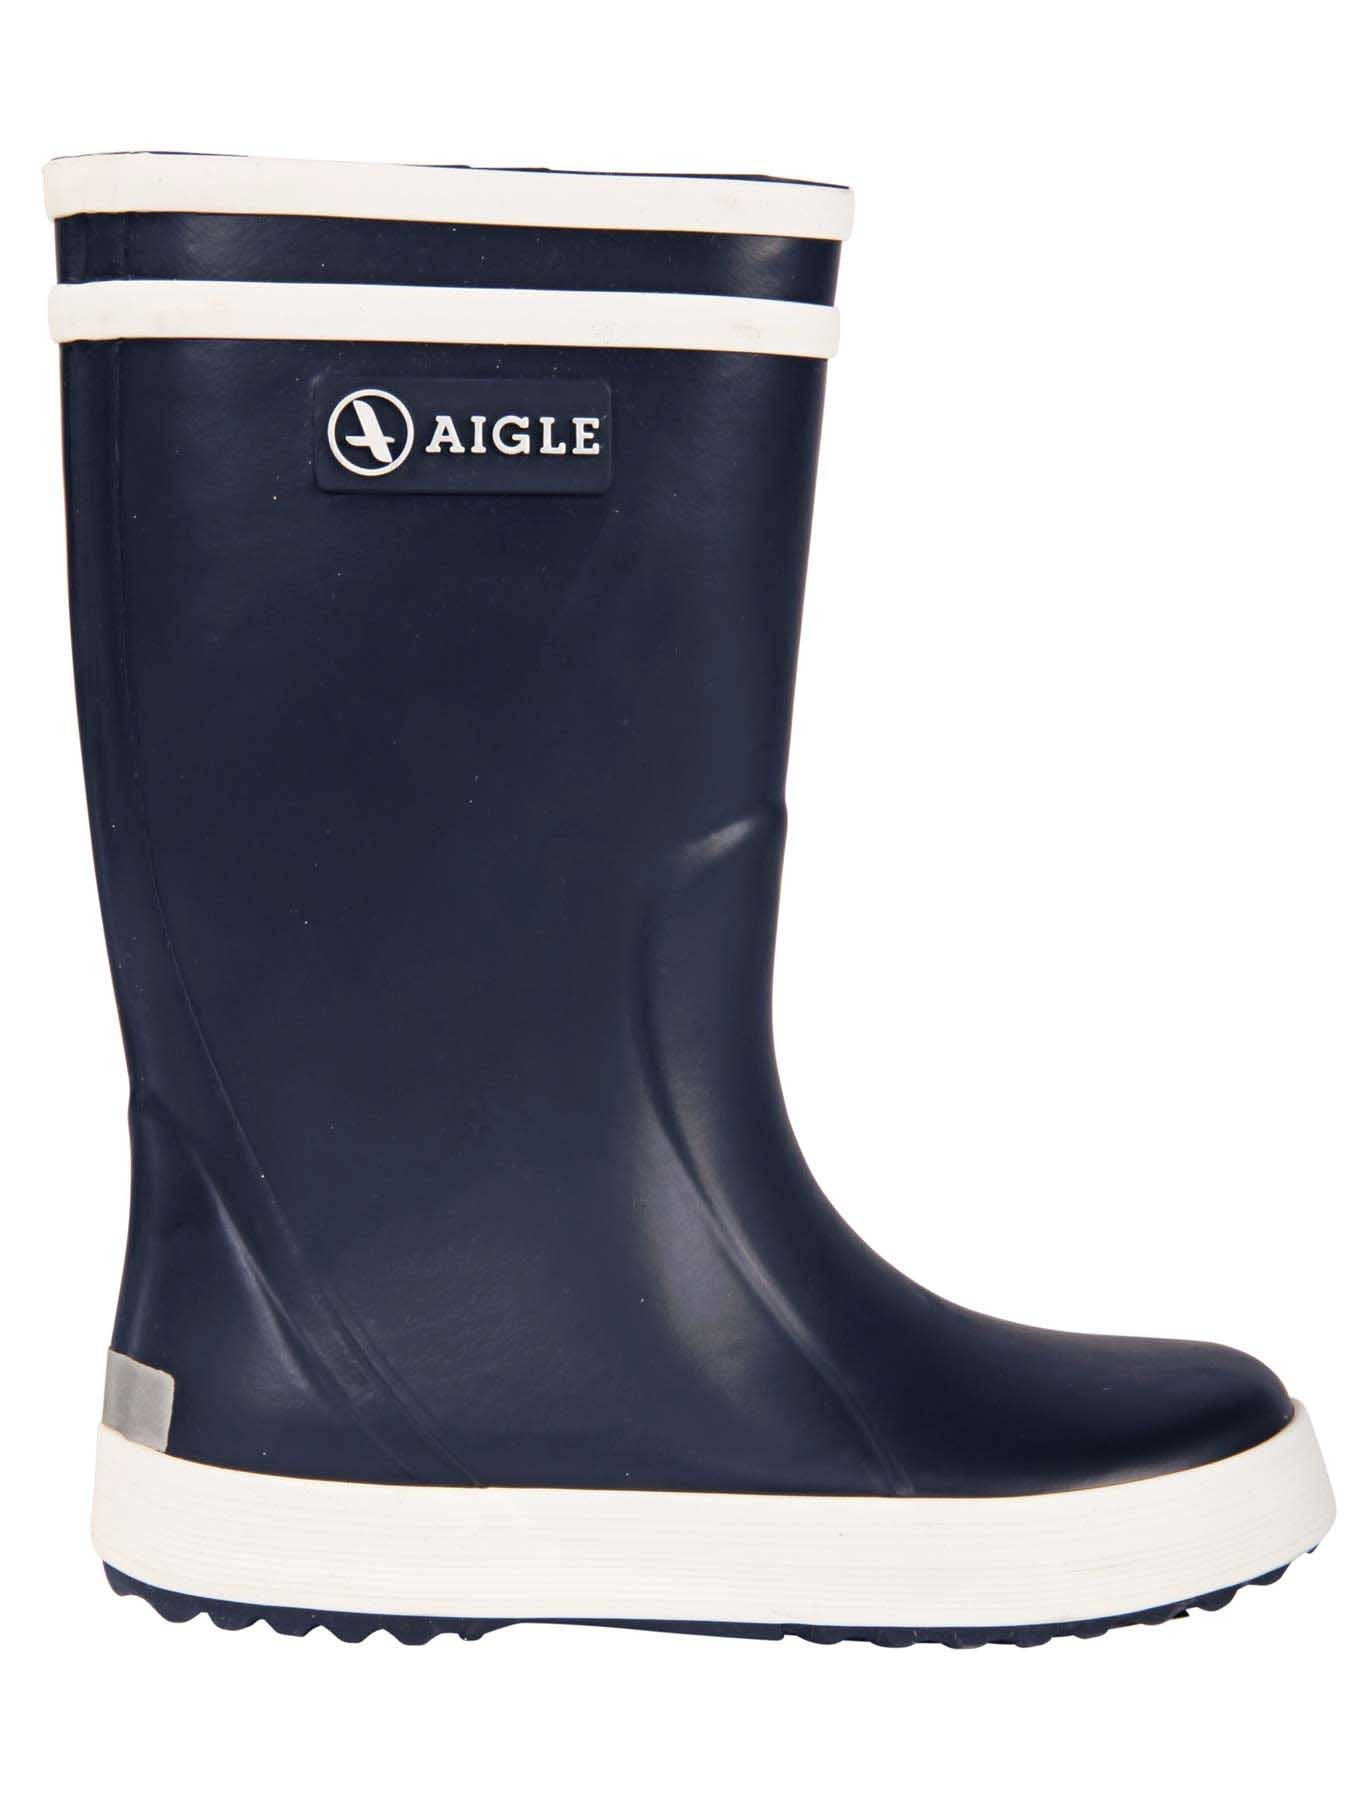 2df0e0fdc Aigle Kids Welly Boot - Lolly Pop Marine